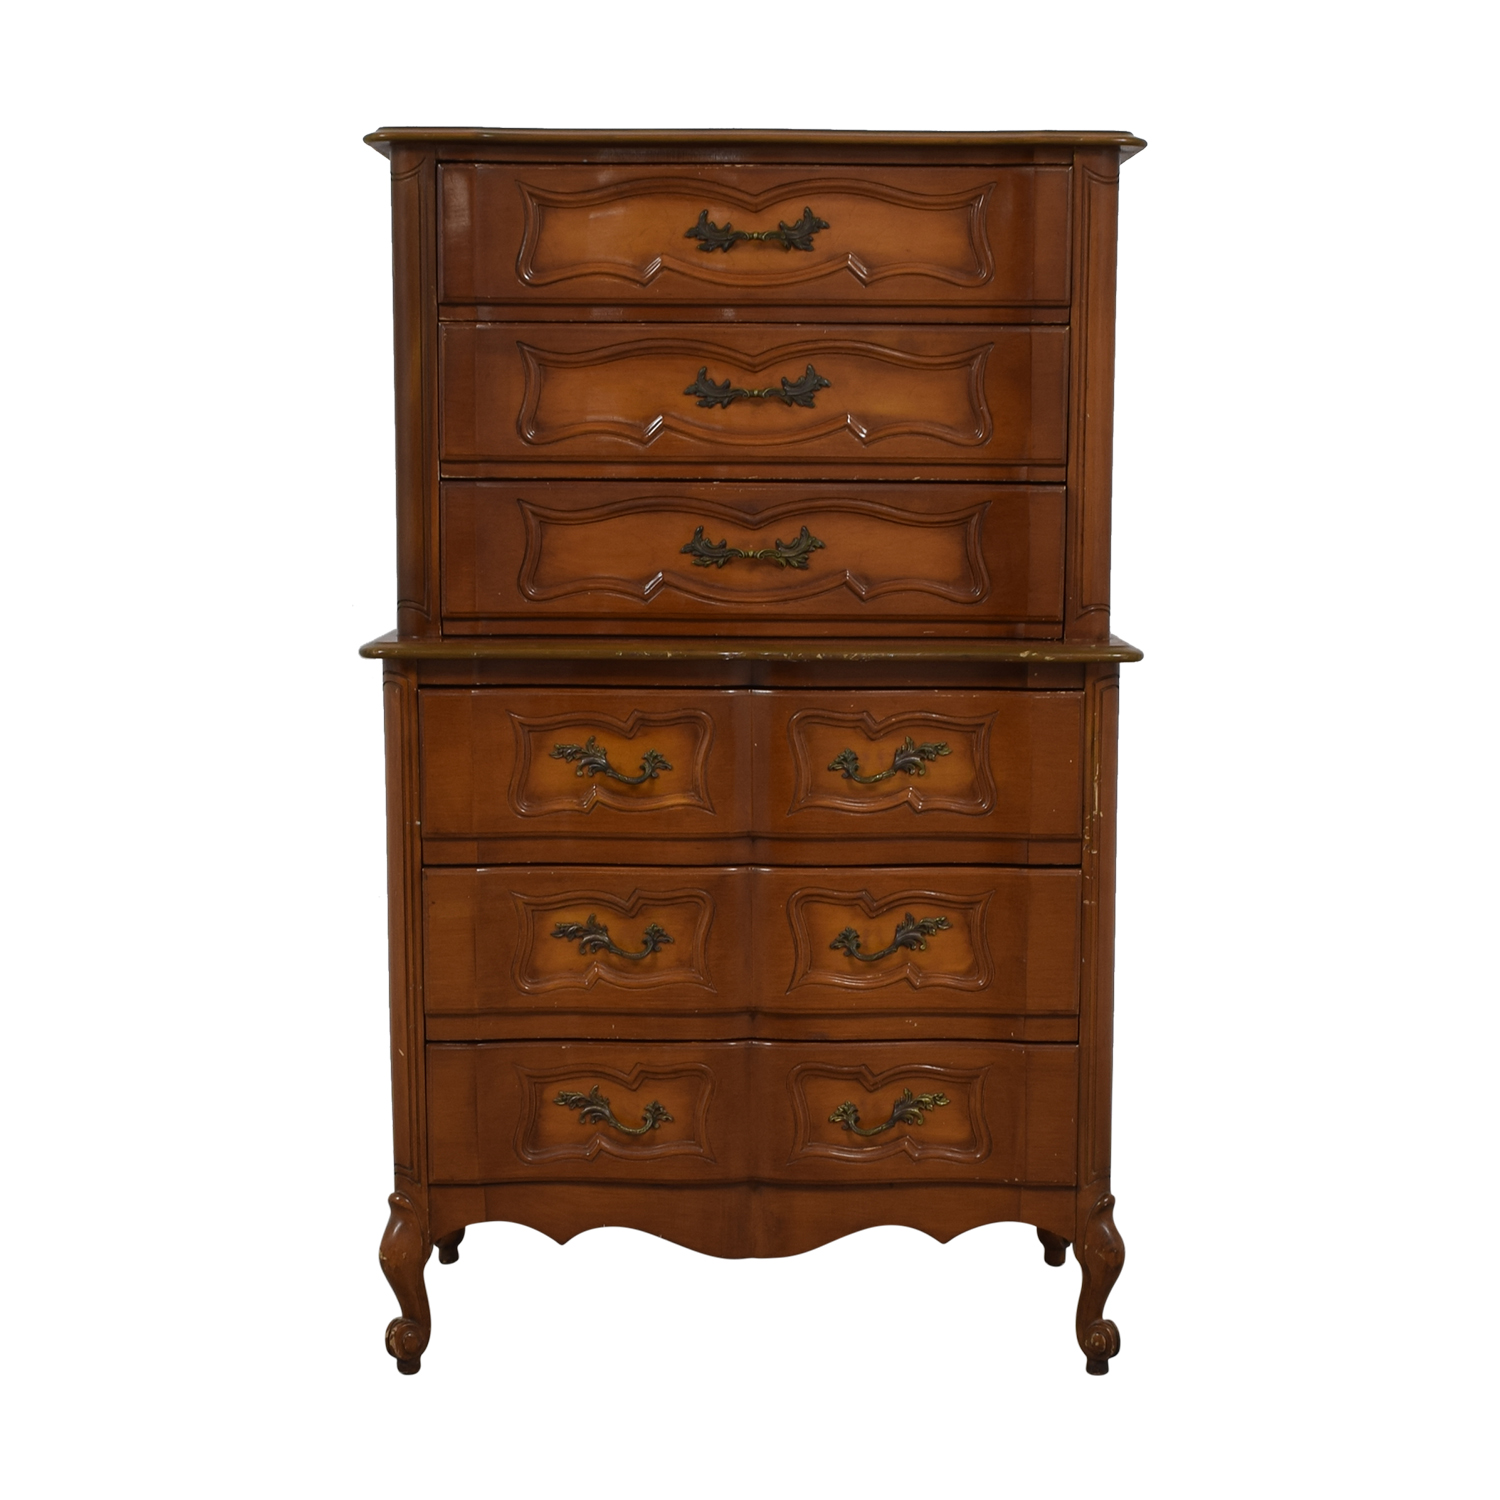 Vanleigh Six-Drawer Tall Dresser brown